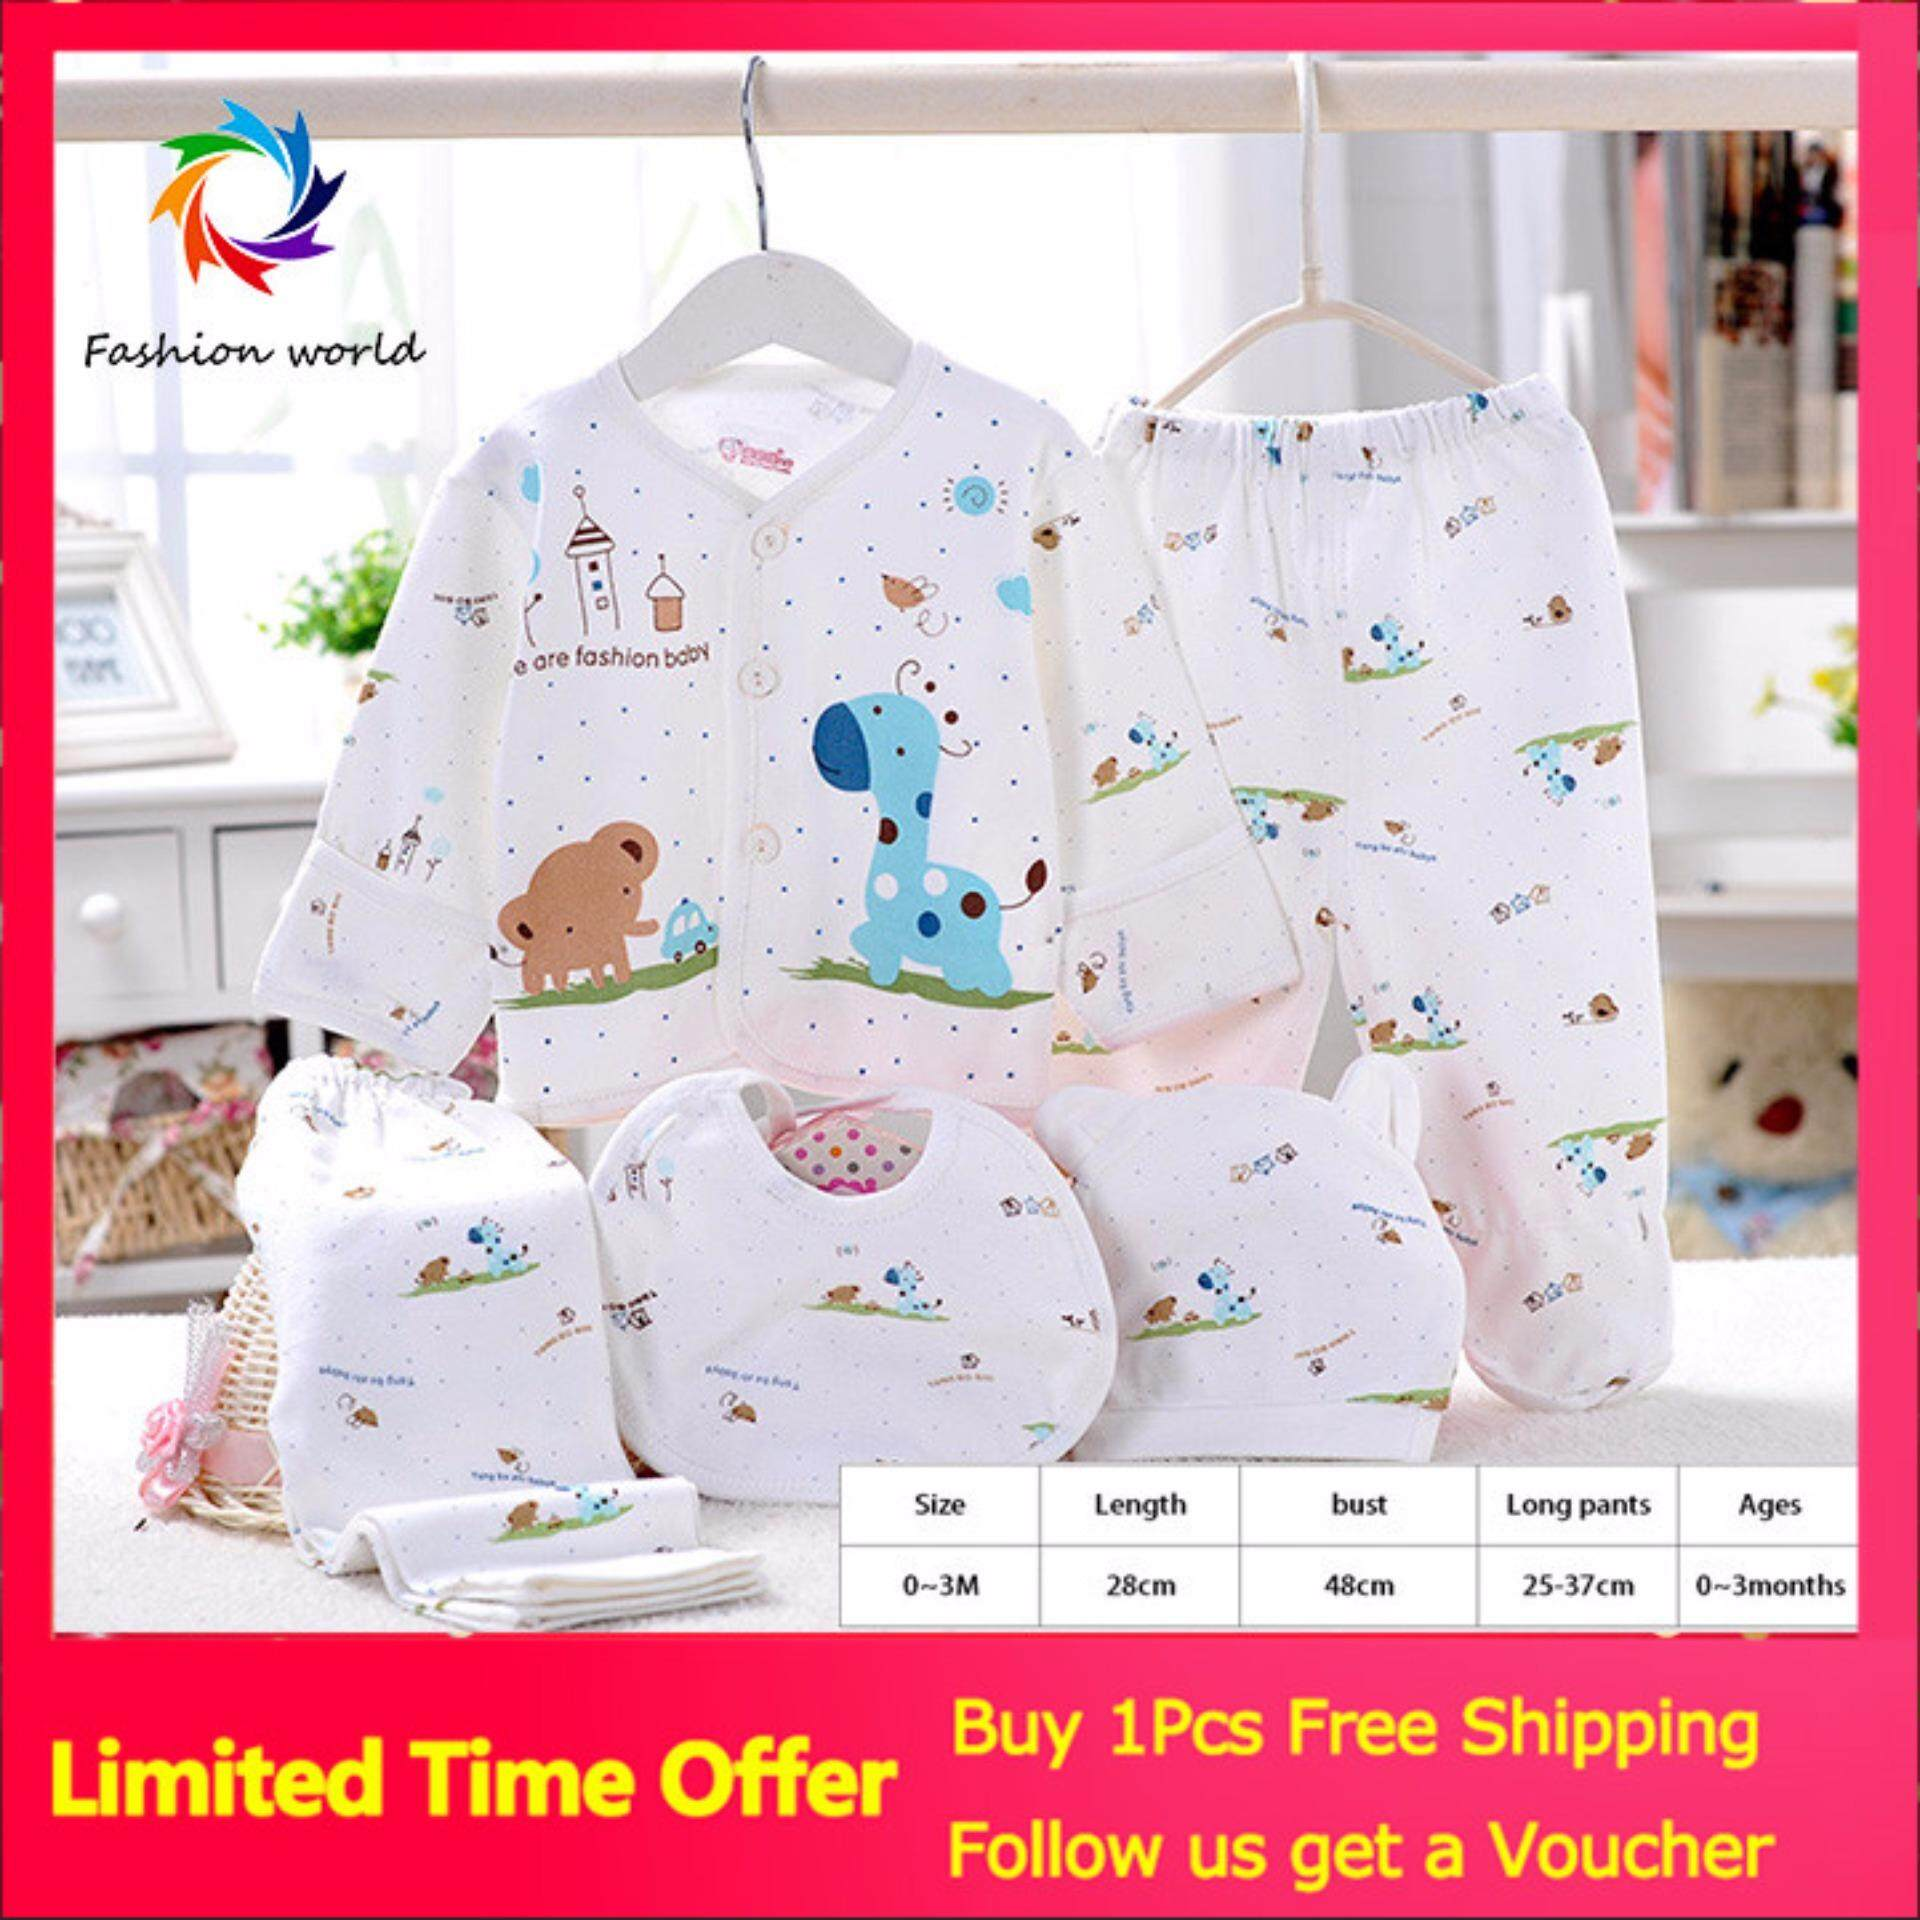 【global+express+delivery+free+shipping】[five-Piece]cotton Baby Underwear / Newborn Clothing Five-Piece (my) By Fashion World.